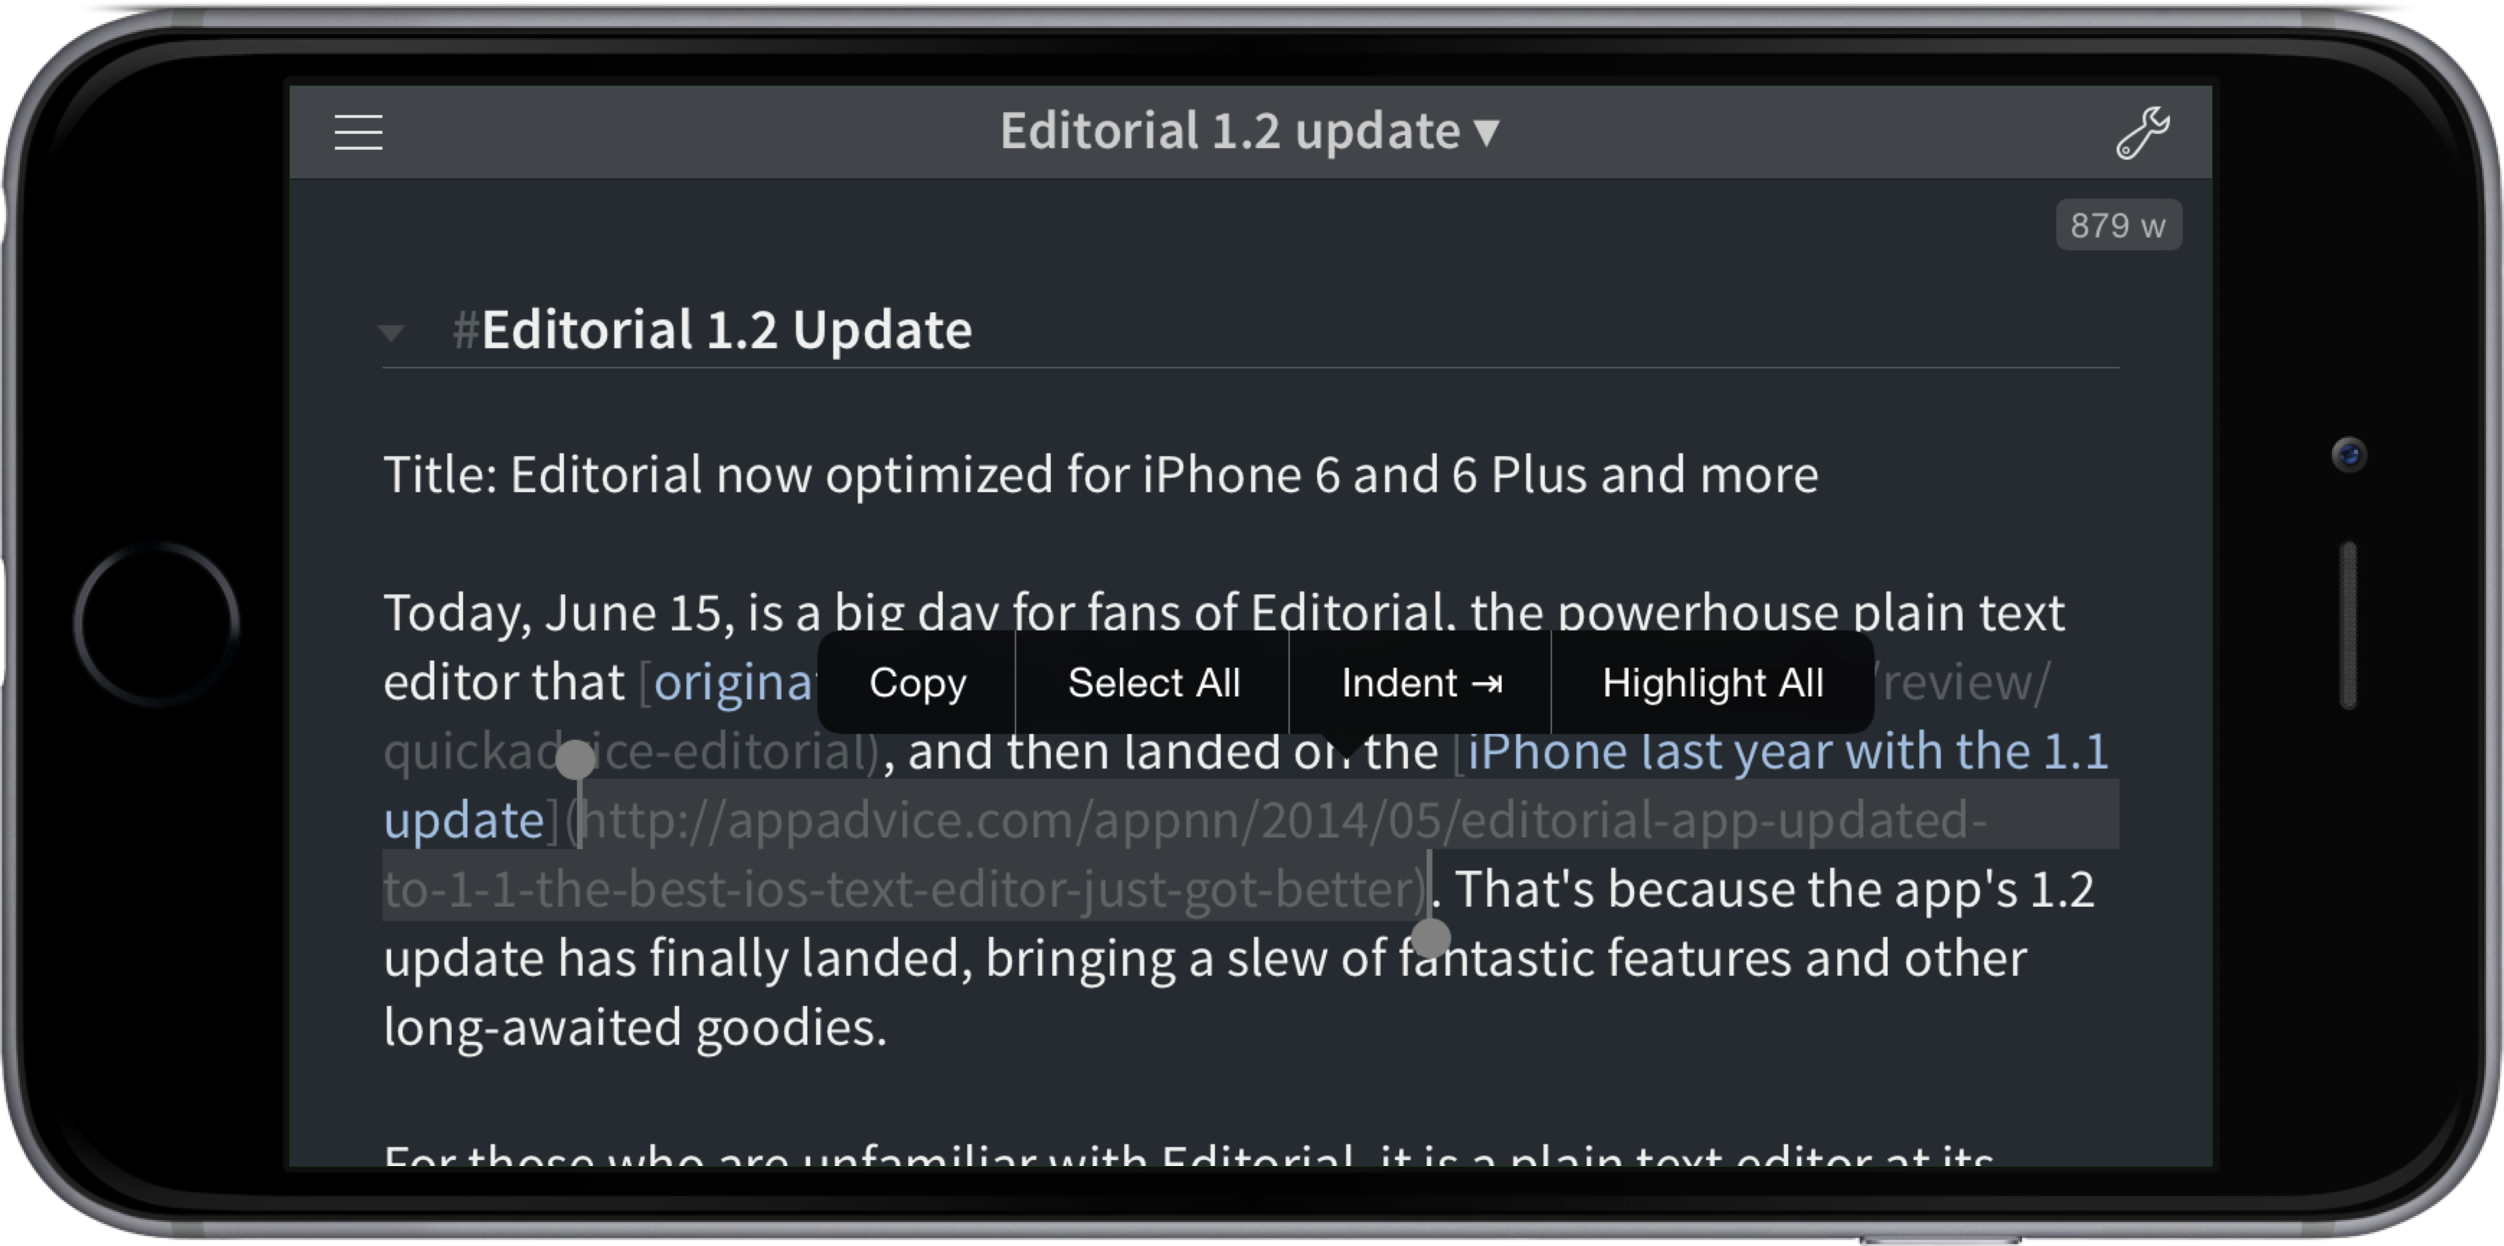 Editorial 1.2 now optimized for the iPhone 6 and 6 Plus and more